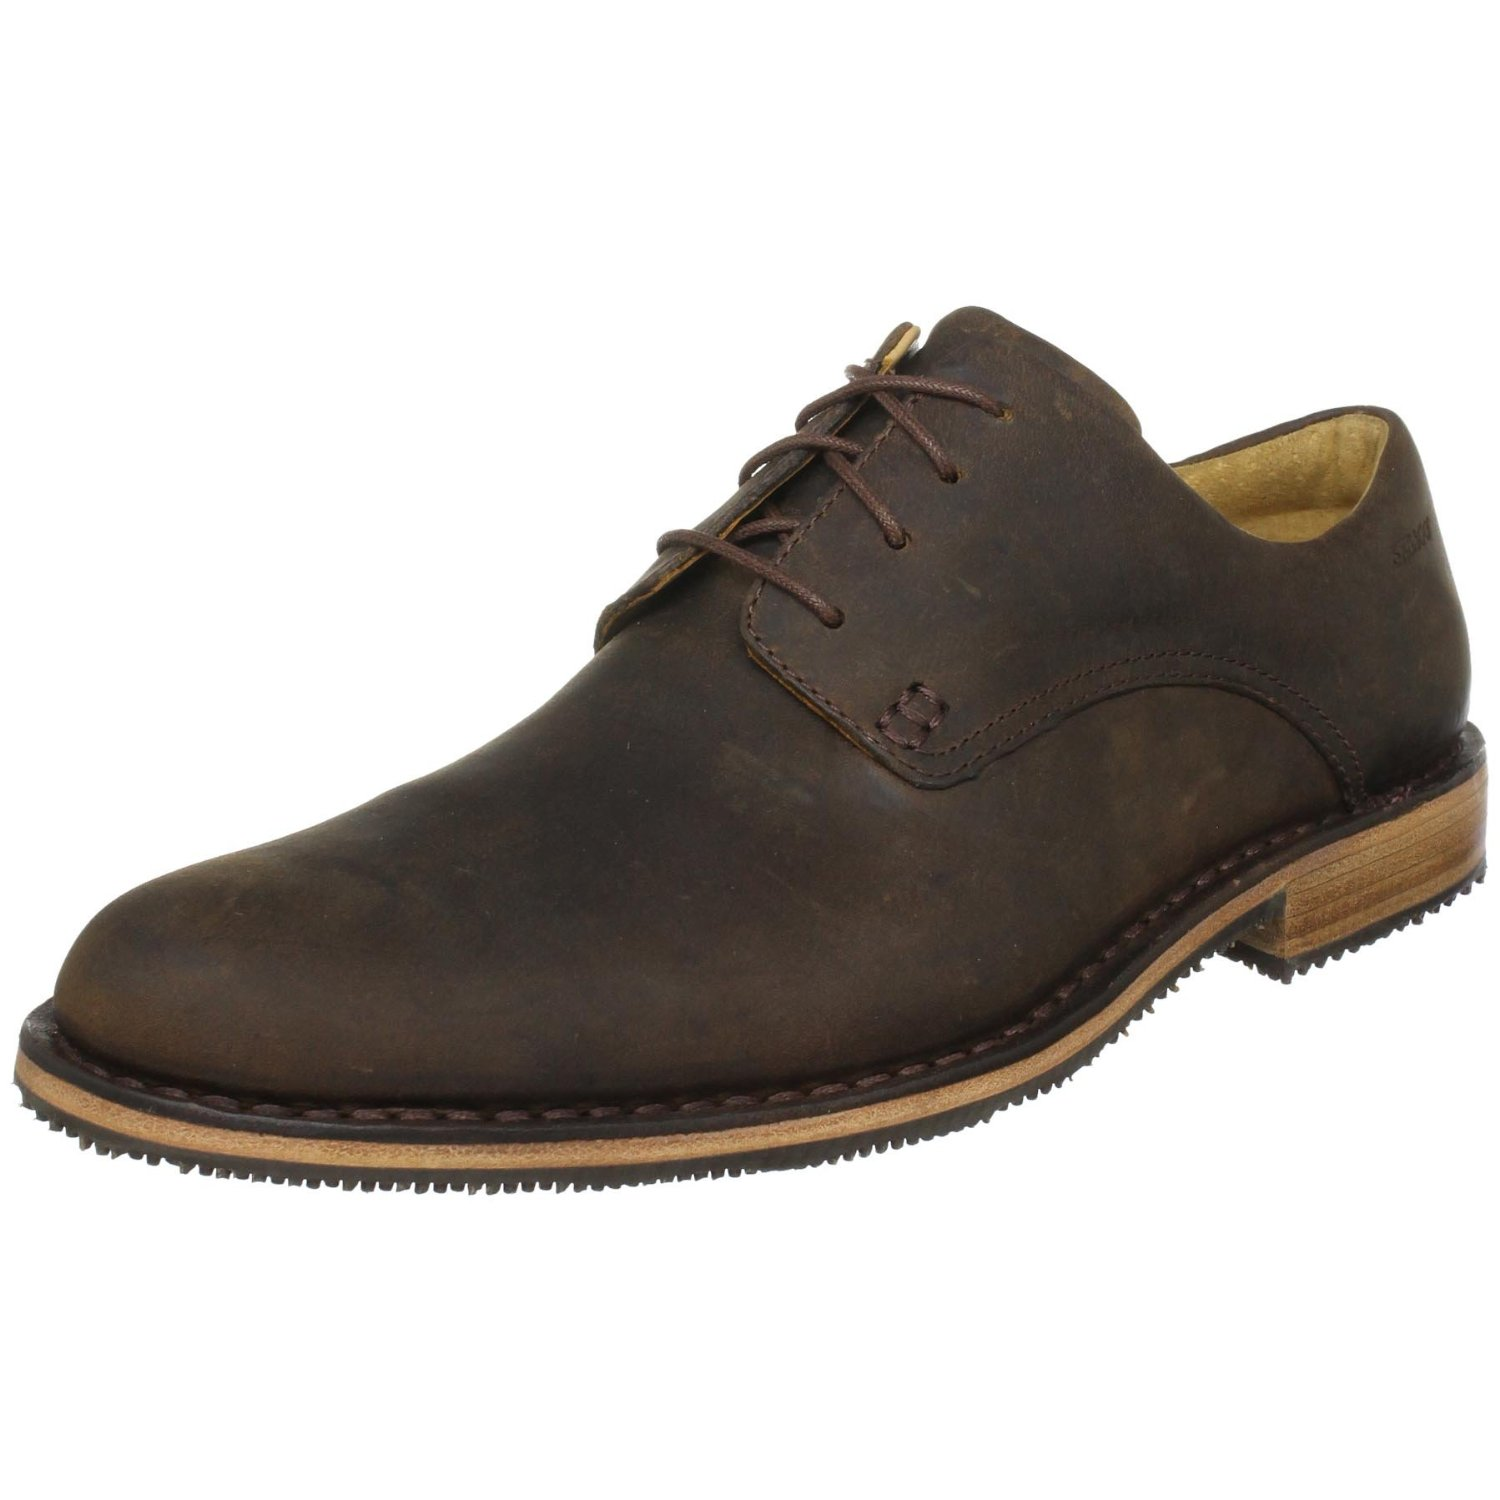 Sebago Men's Salem Oxford